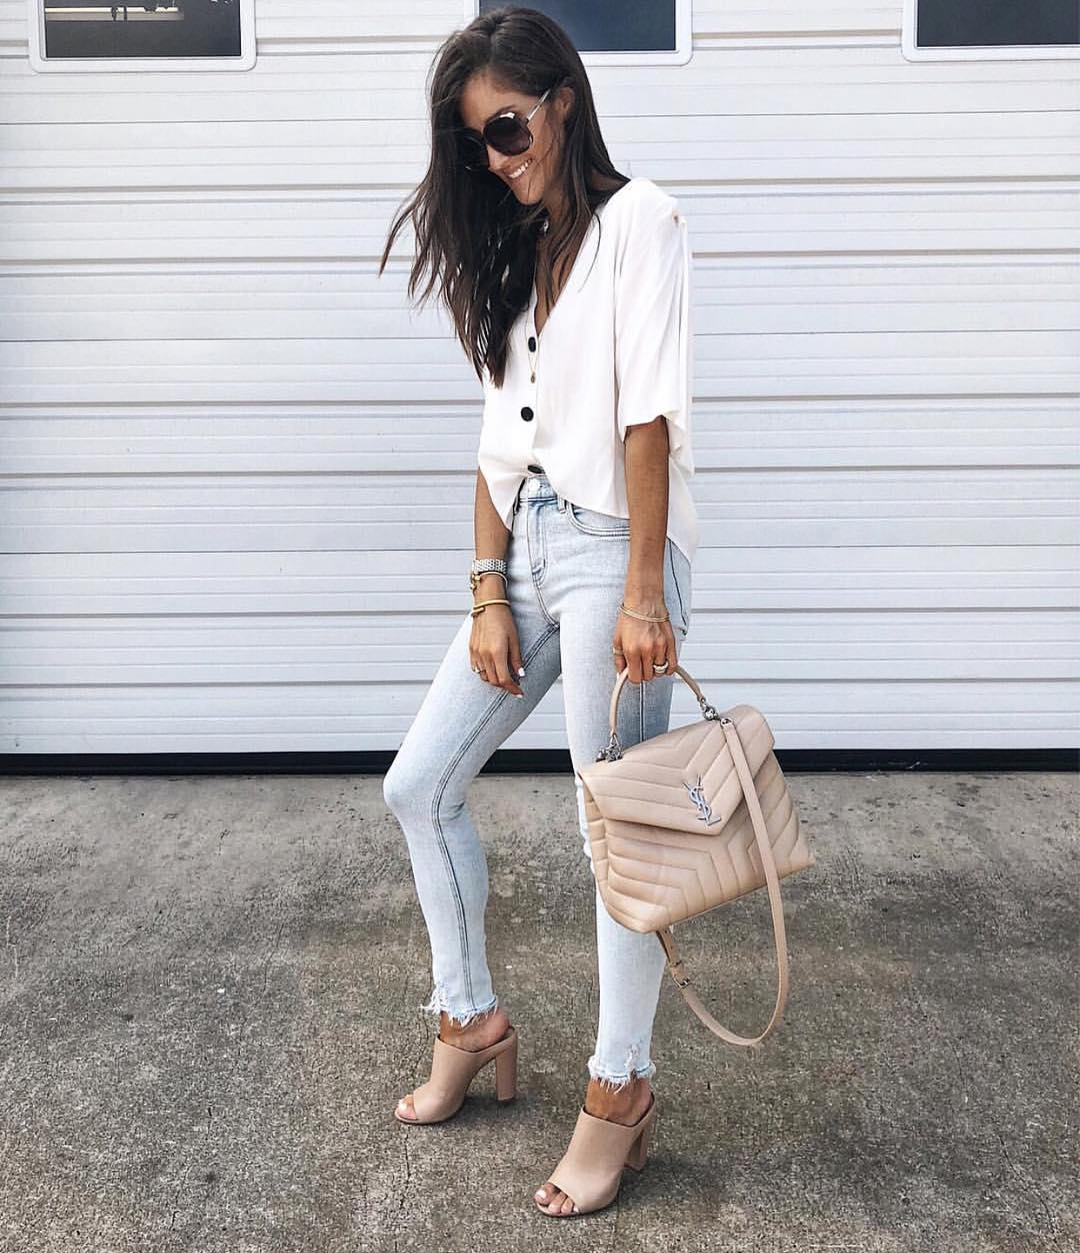 V-neck White Shirt With Wash Blue Skinnies And Peep Toe Mules For Summer 2019